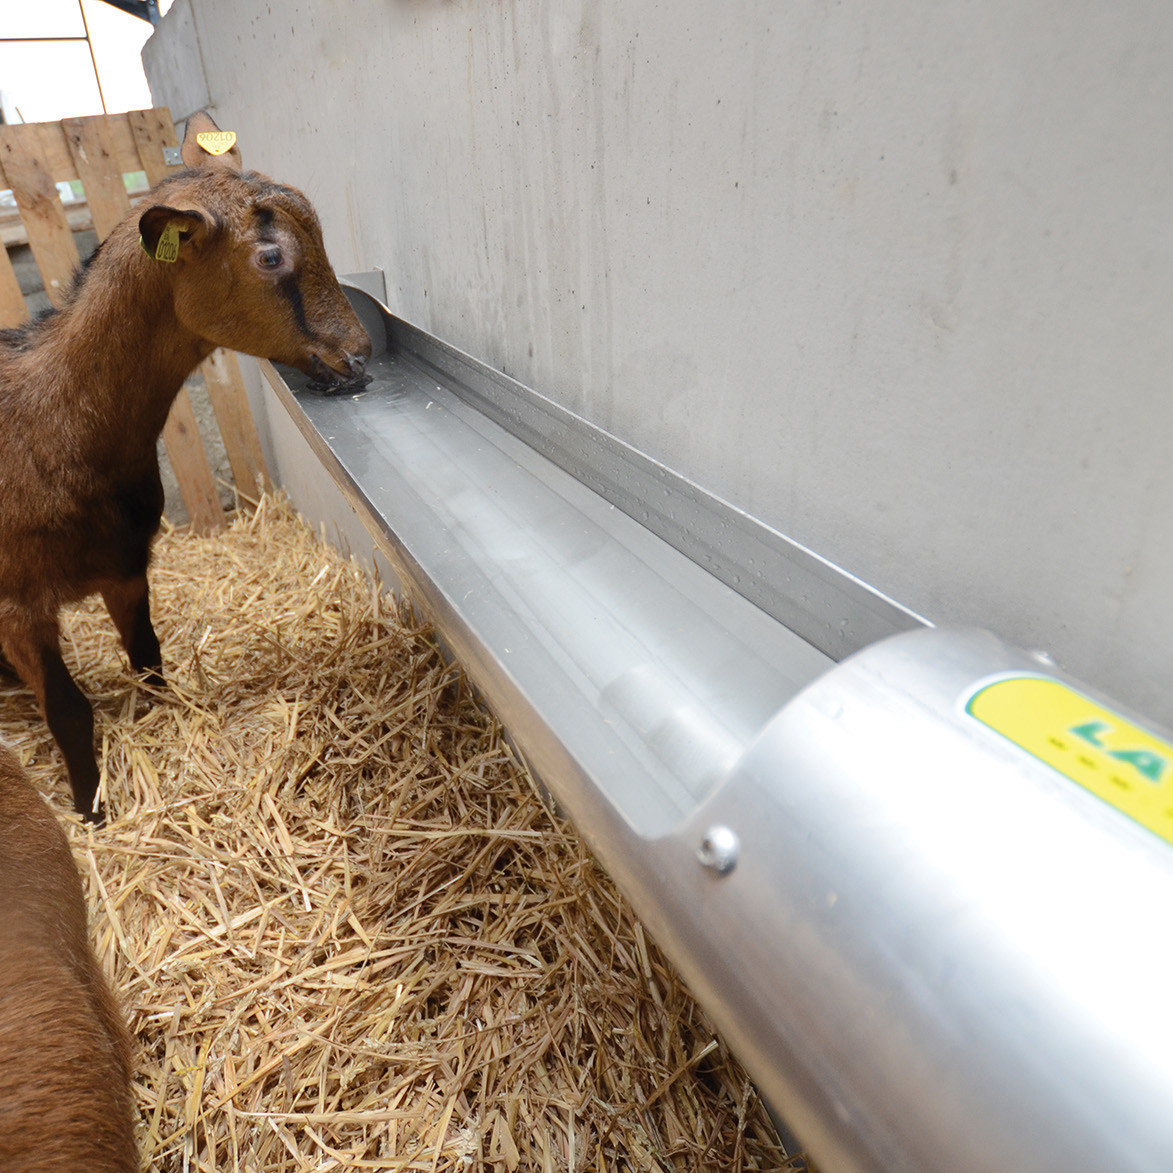 OVITUBE 120 Stainless steel trough for sheep and goats